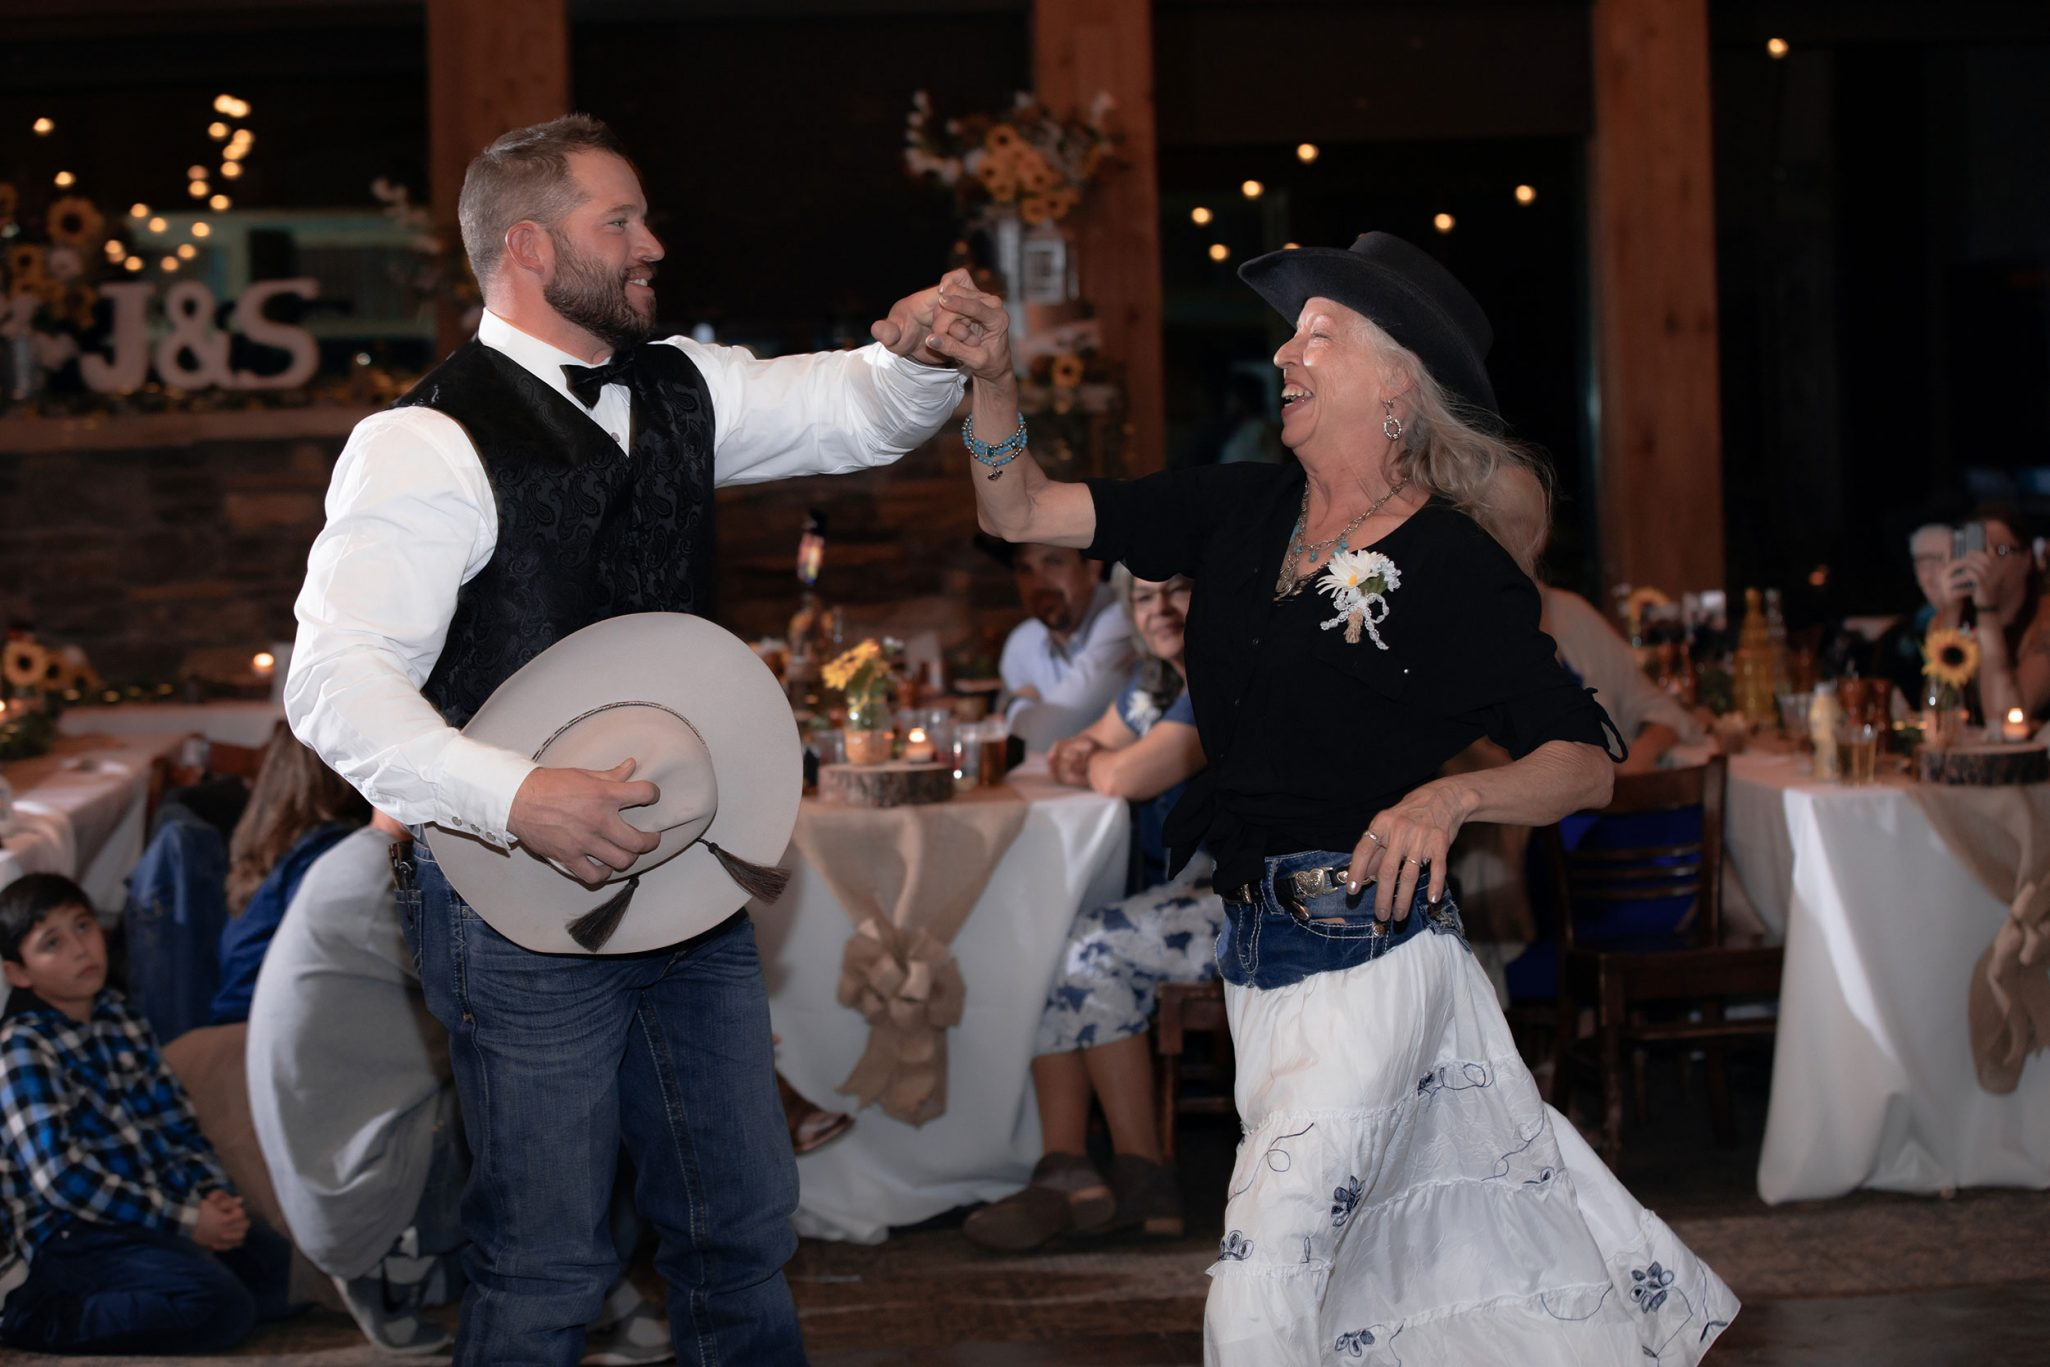 Groom & mom dancing